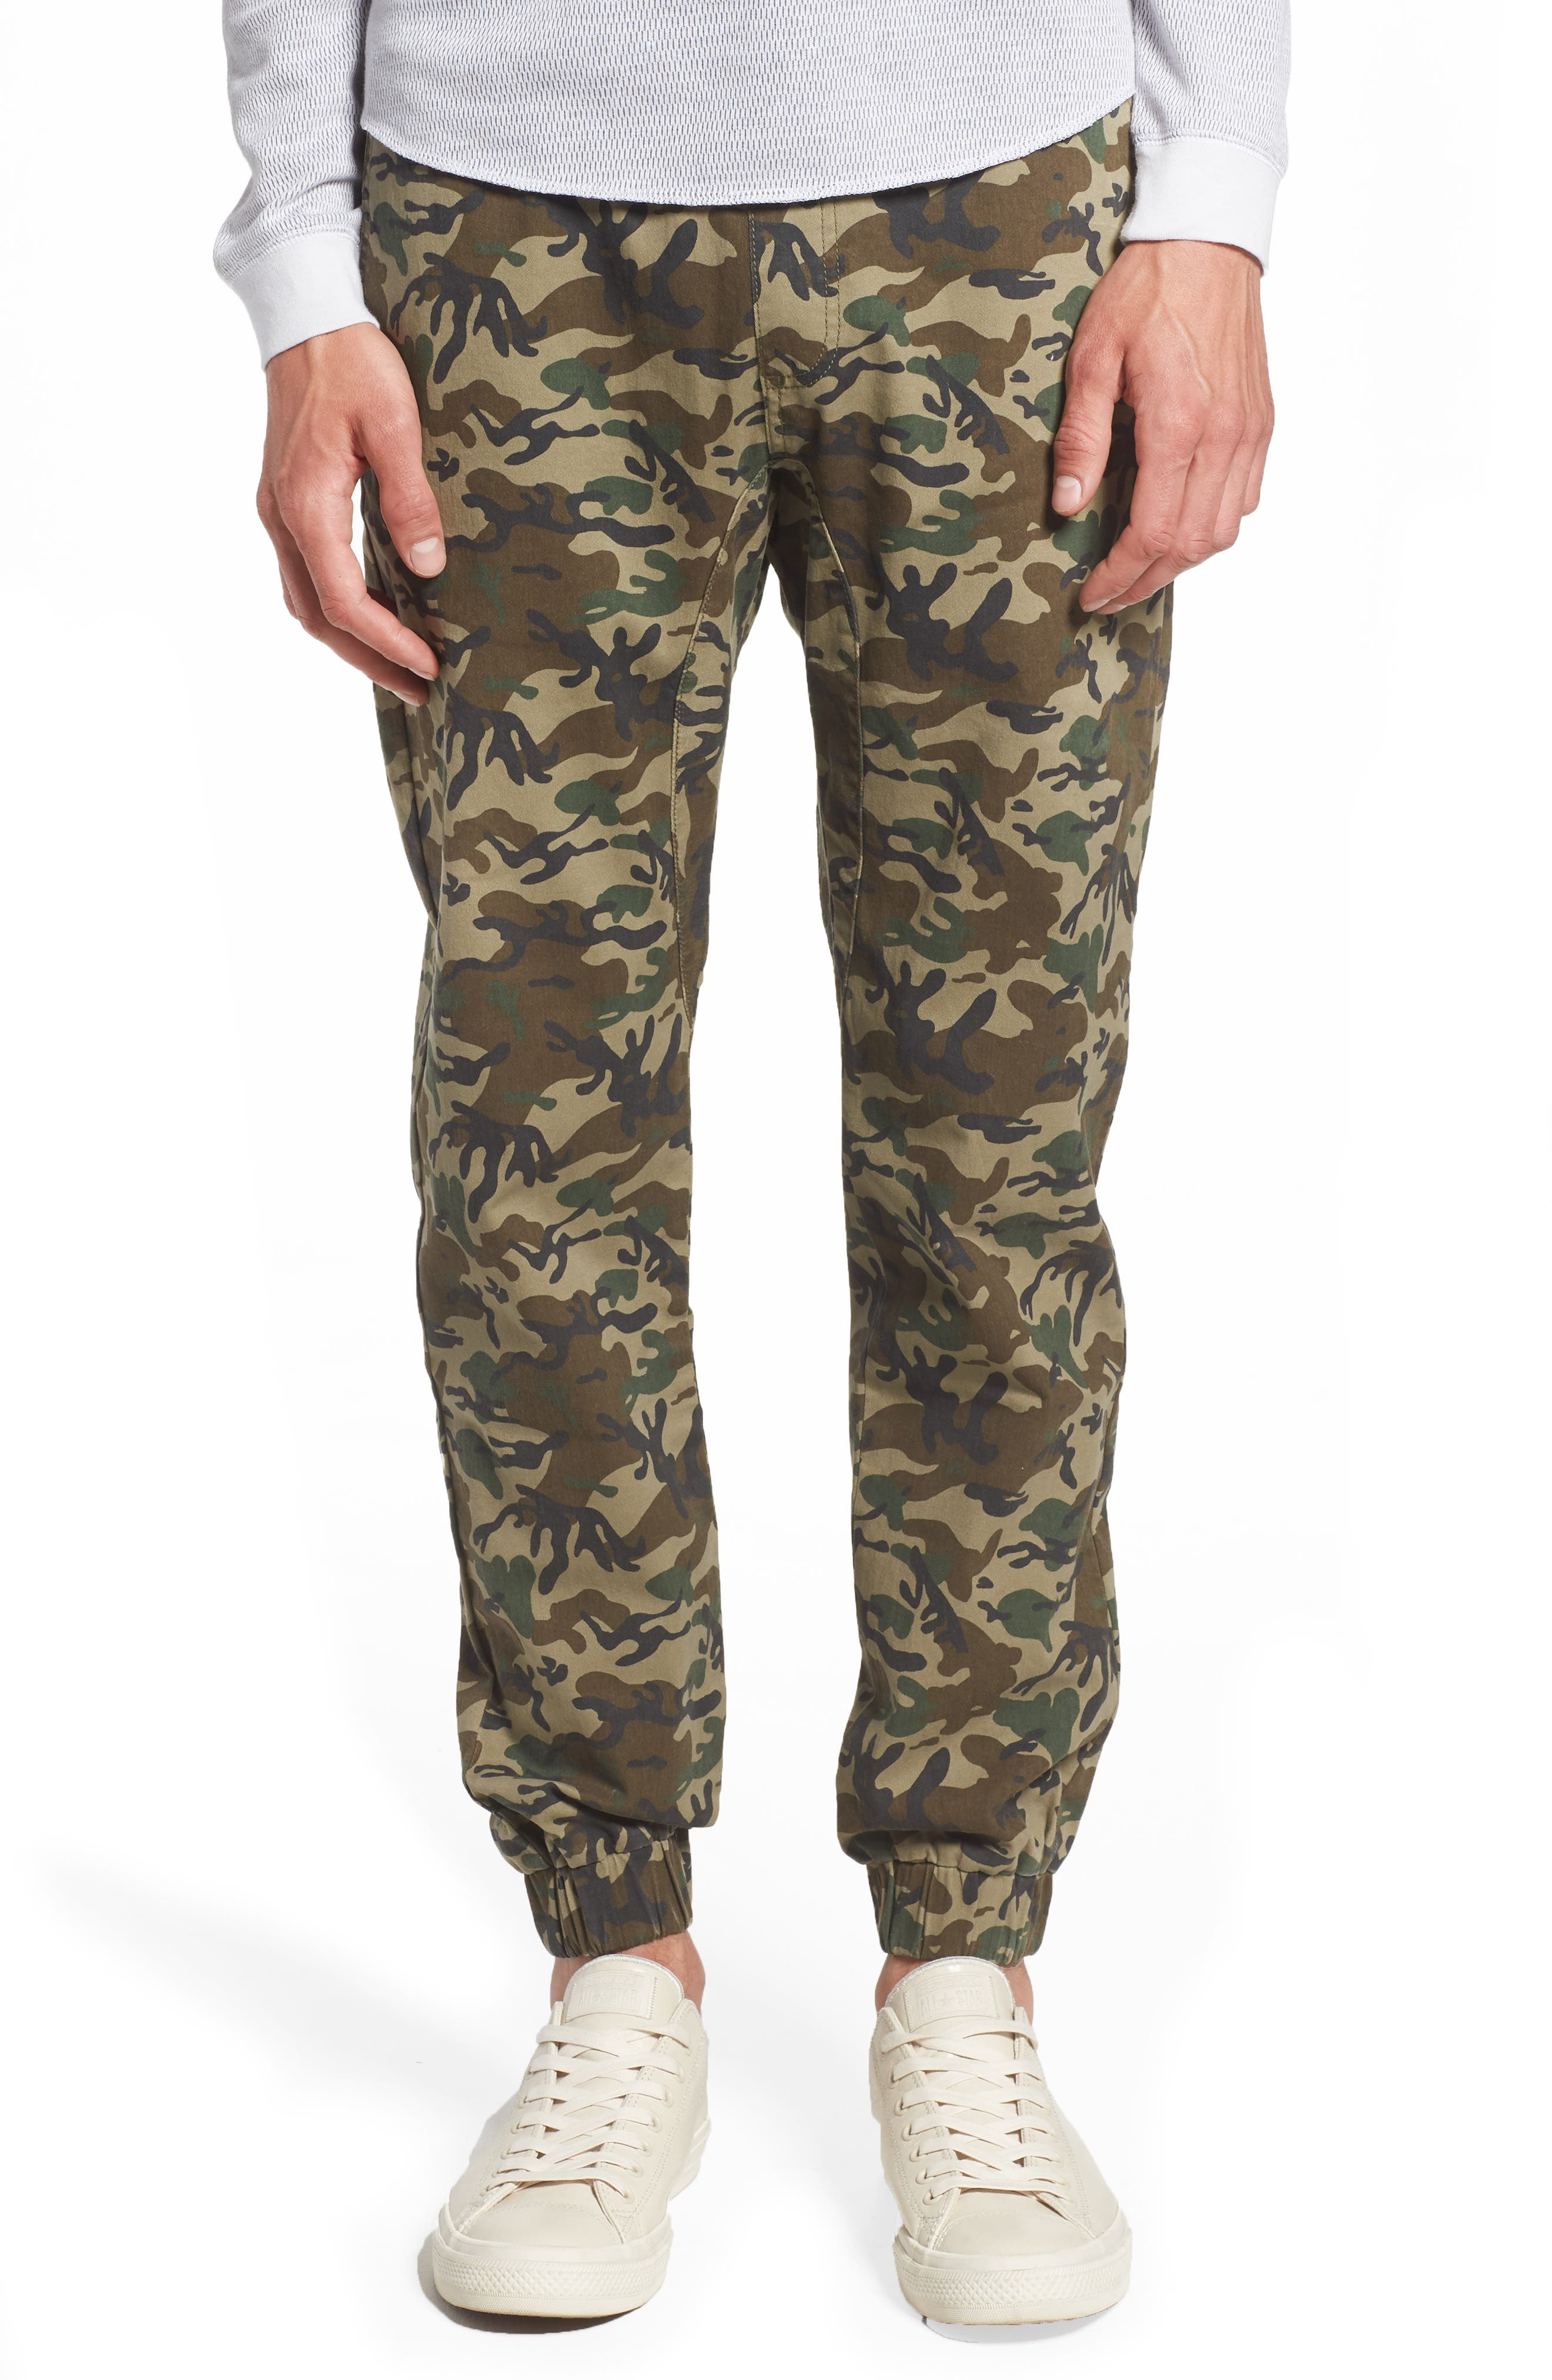 The Rail Print Jogger Pants